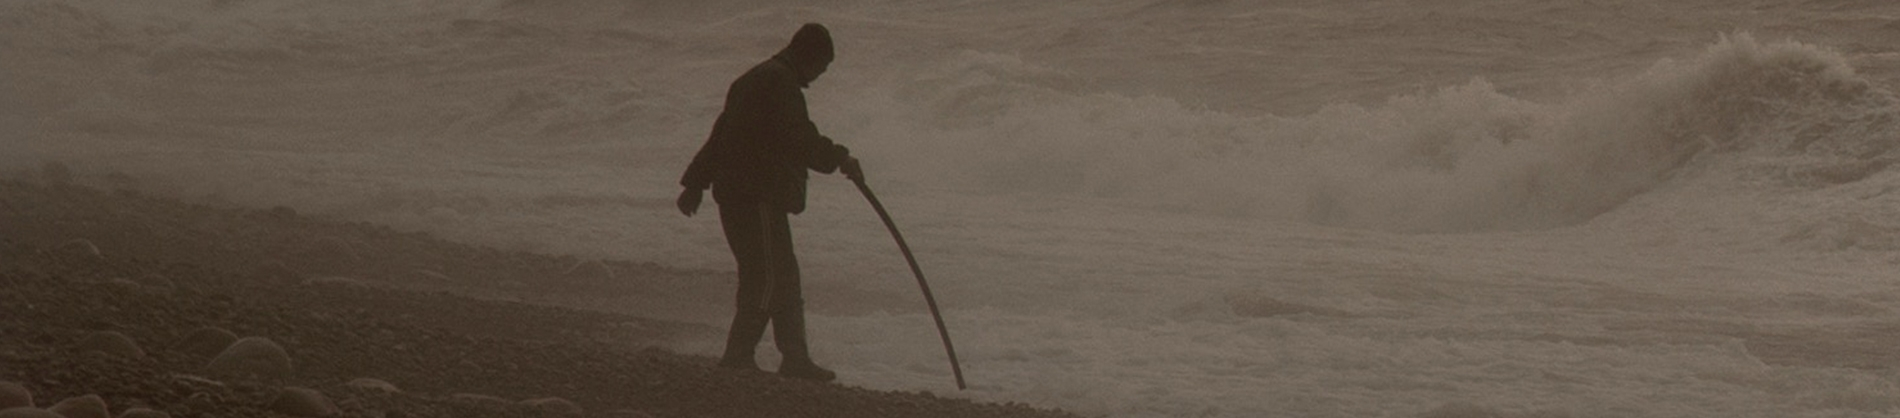 A man walking towards the ocean with a walking stick